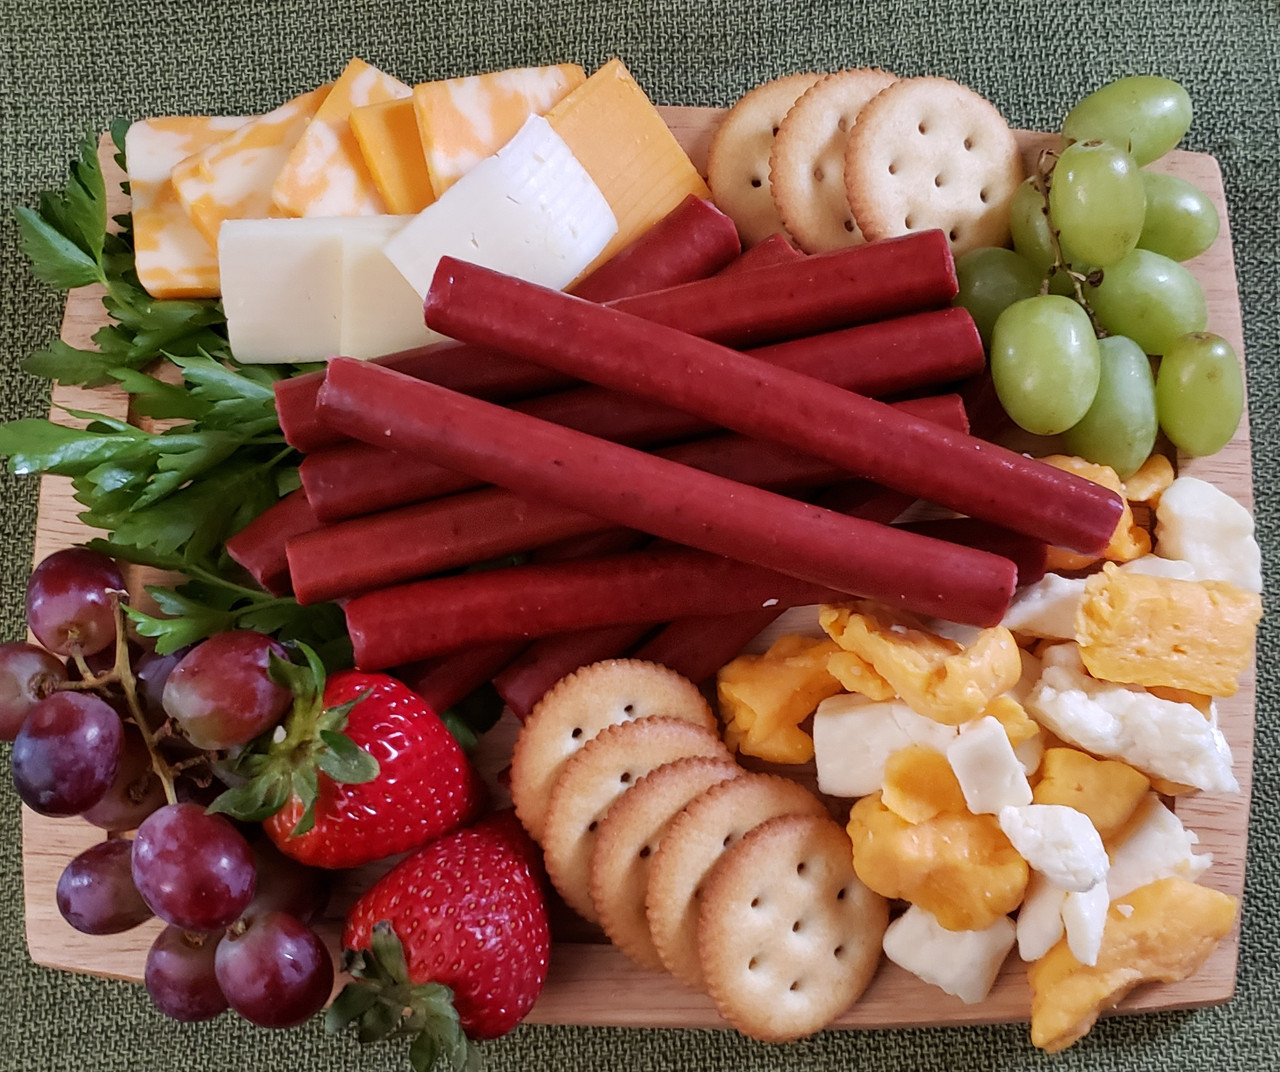 Venison, cheese, and crackers - very Wisconsin!